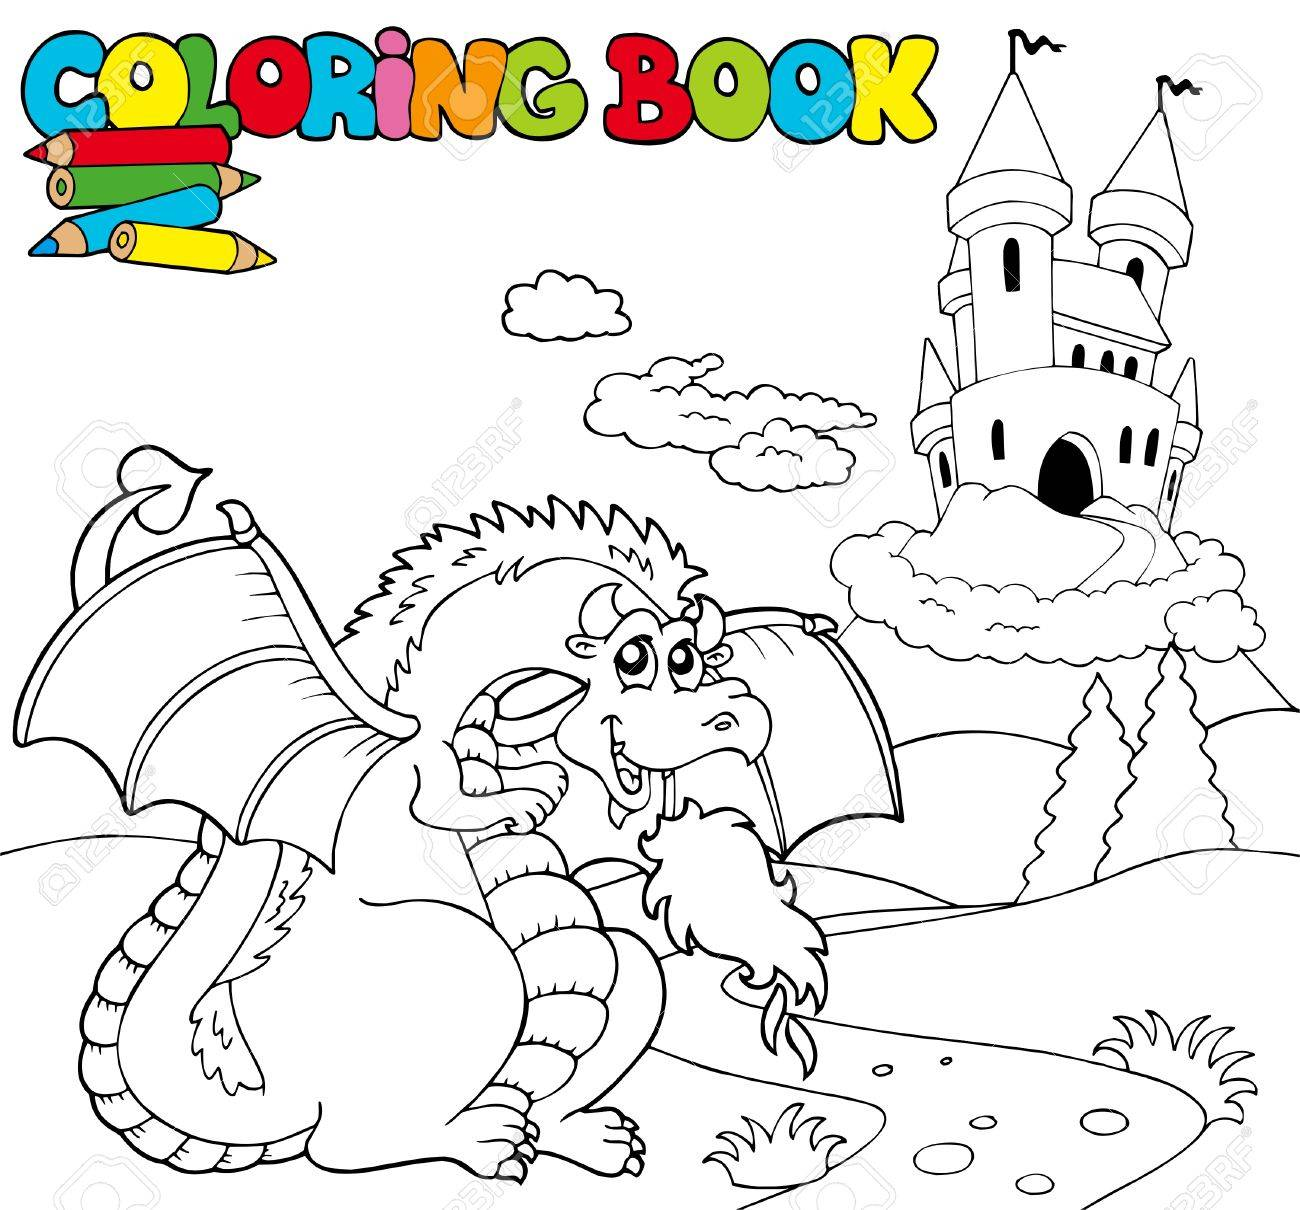 Coloring book with big dragon - illustration. Stock Vector - 8145357